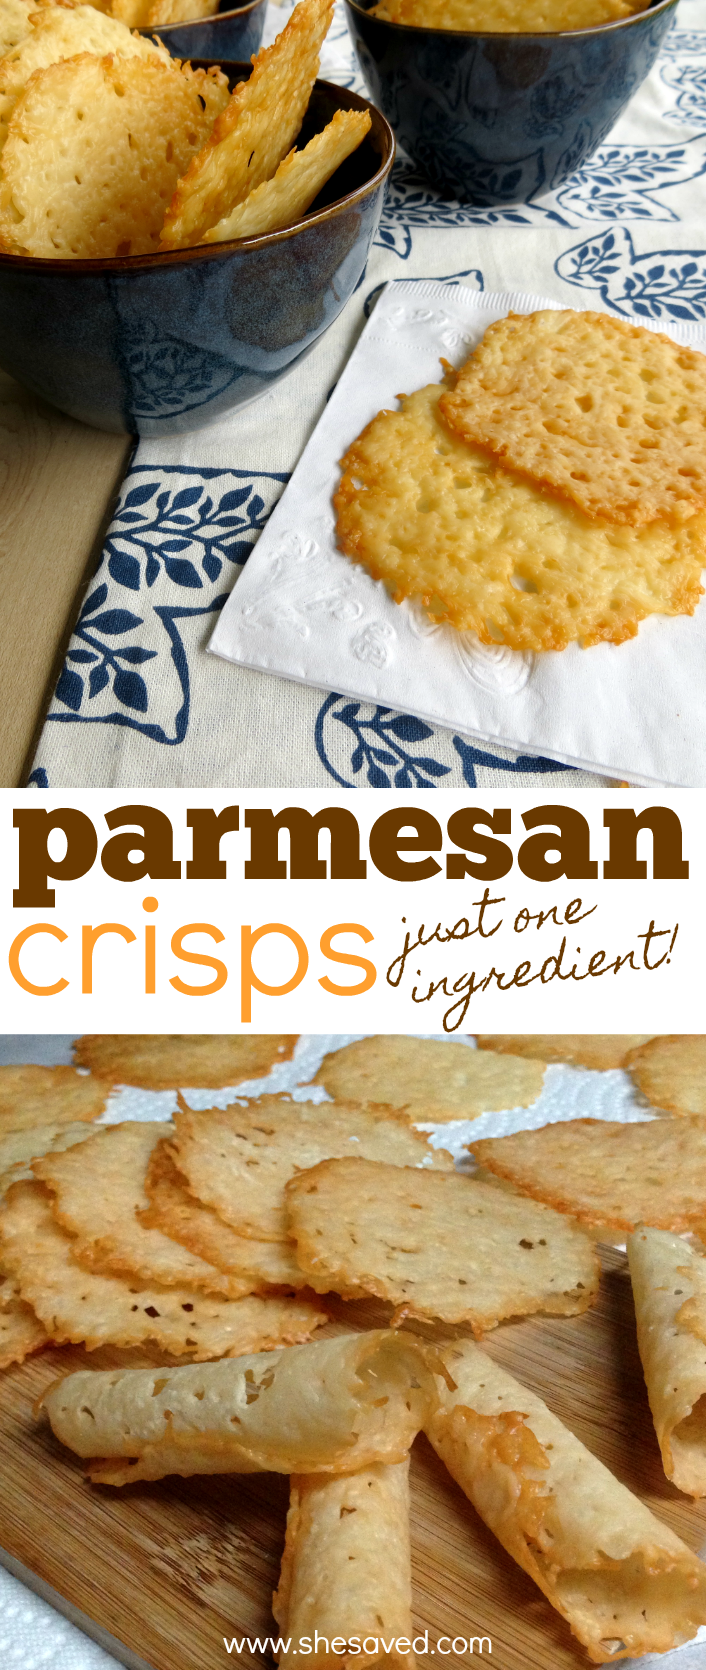 How to melt cheese for parmesan crisps